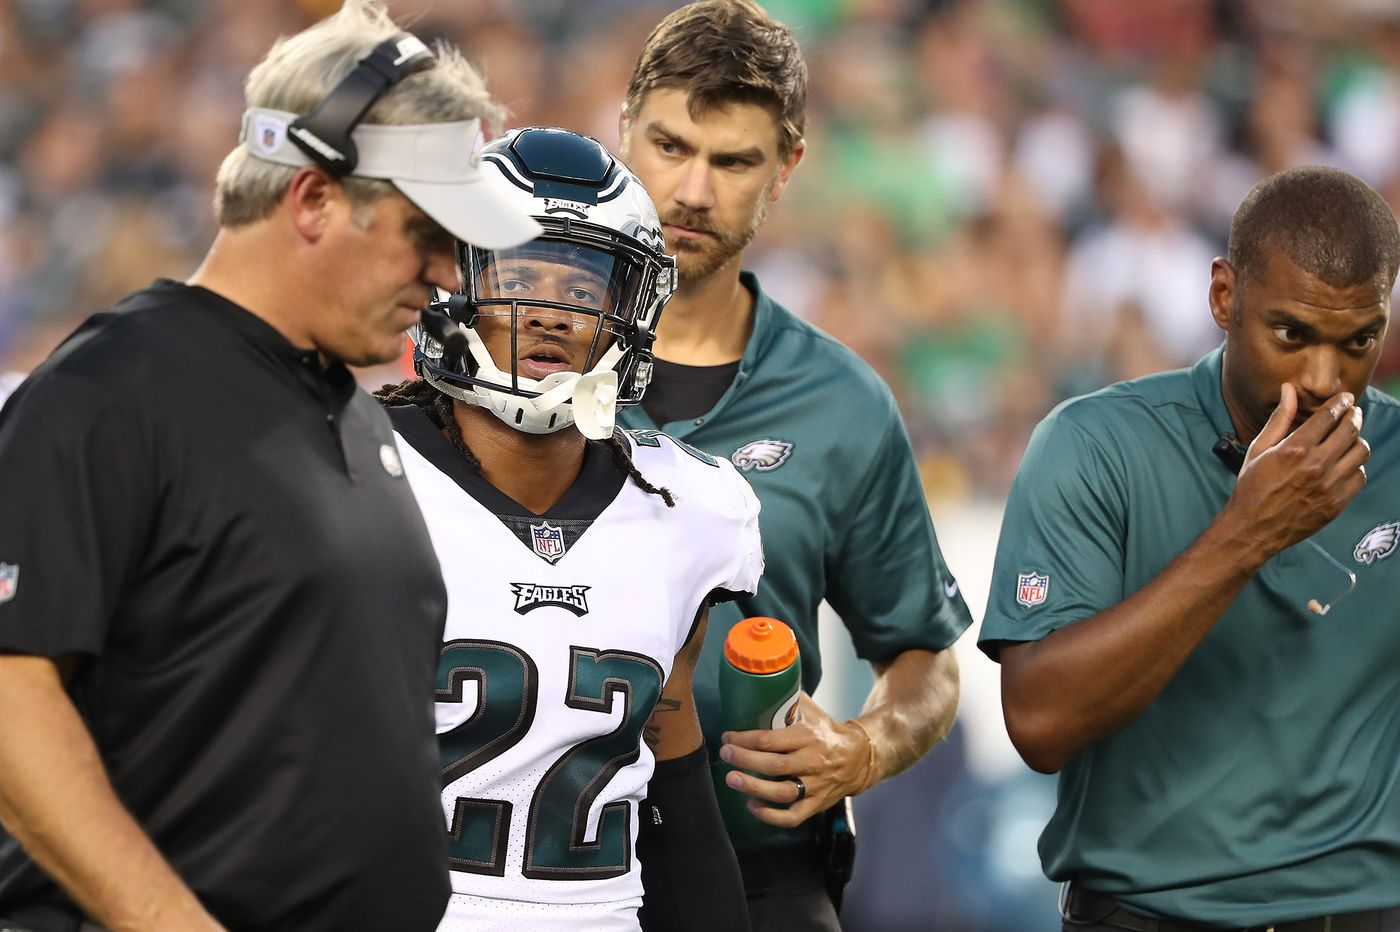 Sidney Jones survives injury scare in Eagles preseason opener